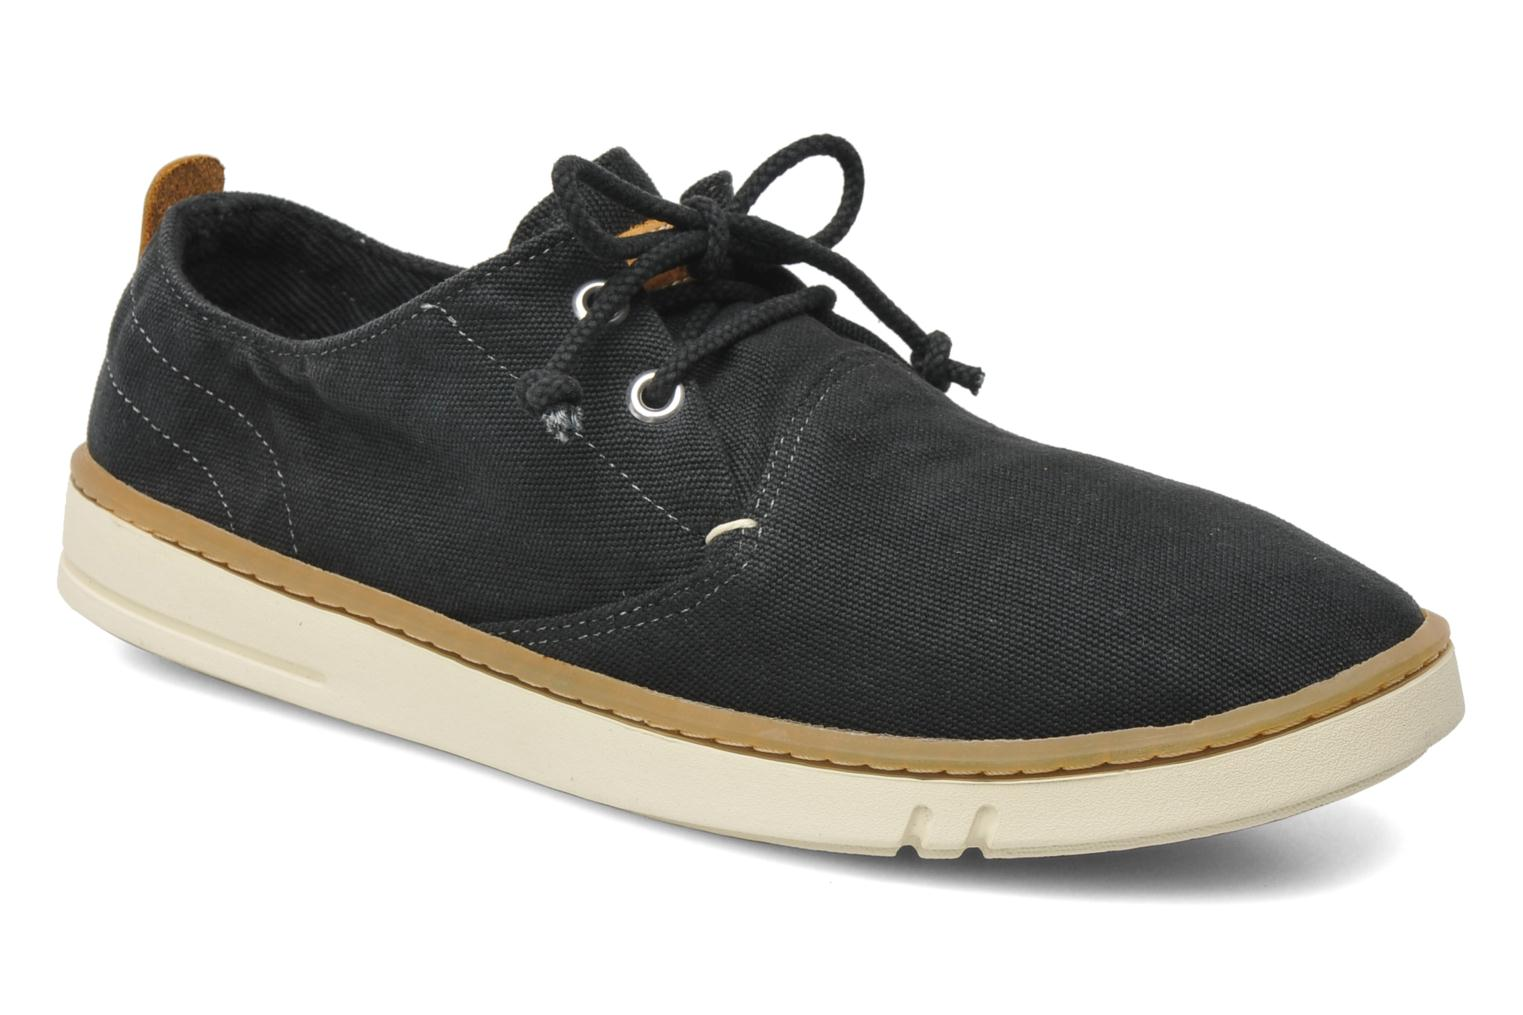 Earthkeepers Hookset Handcrafted Fabric Oxford Washed Black Canvas